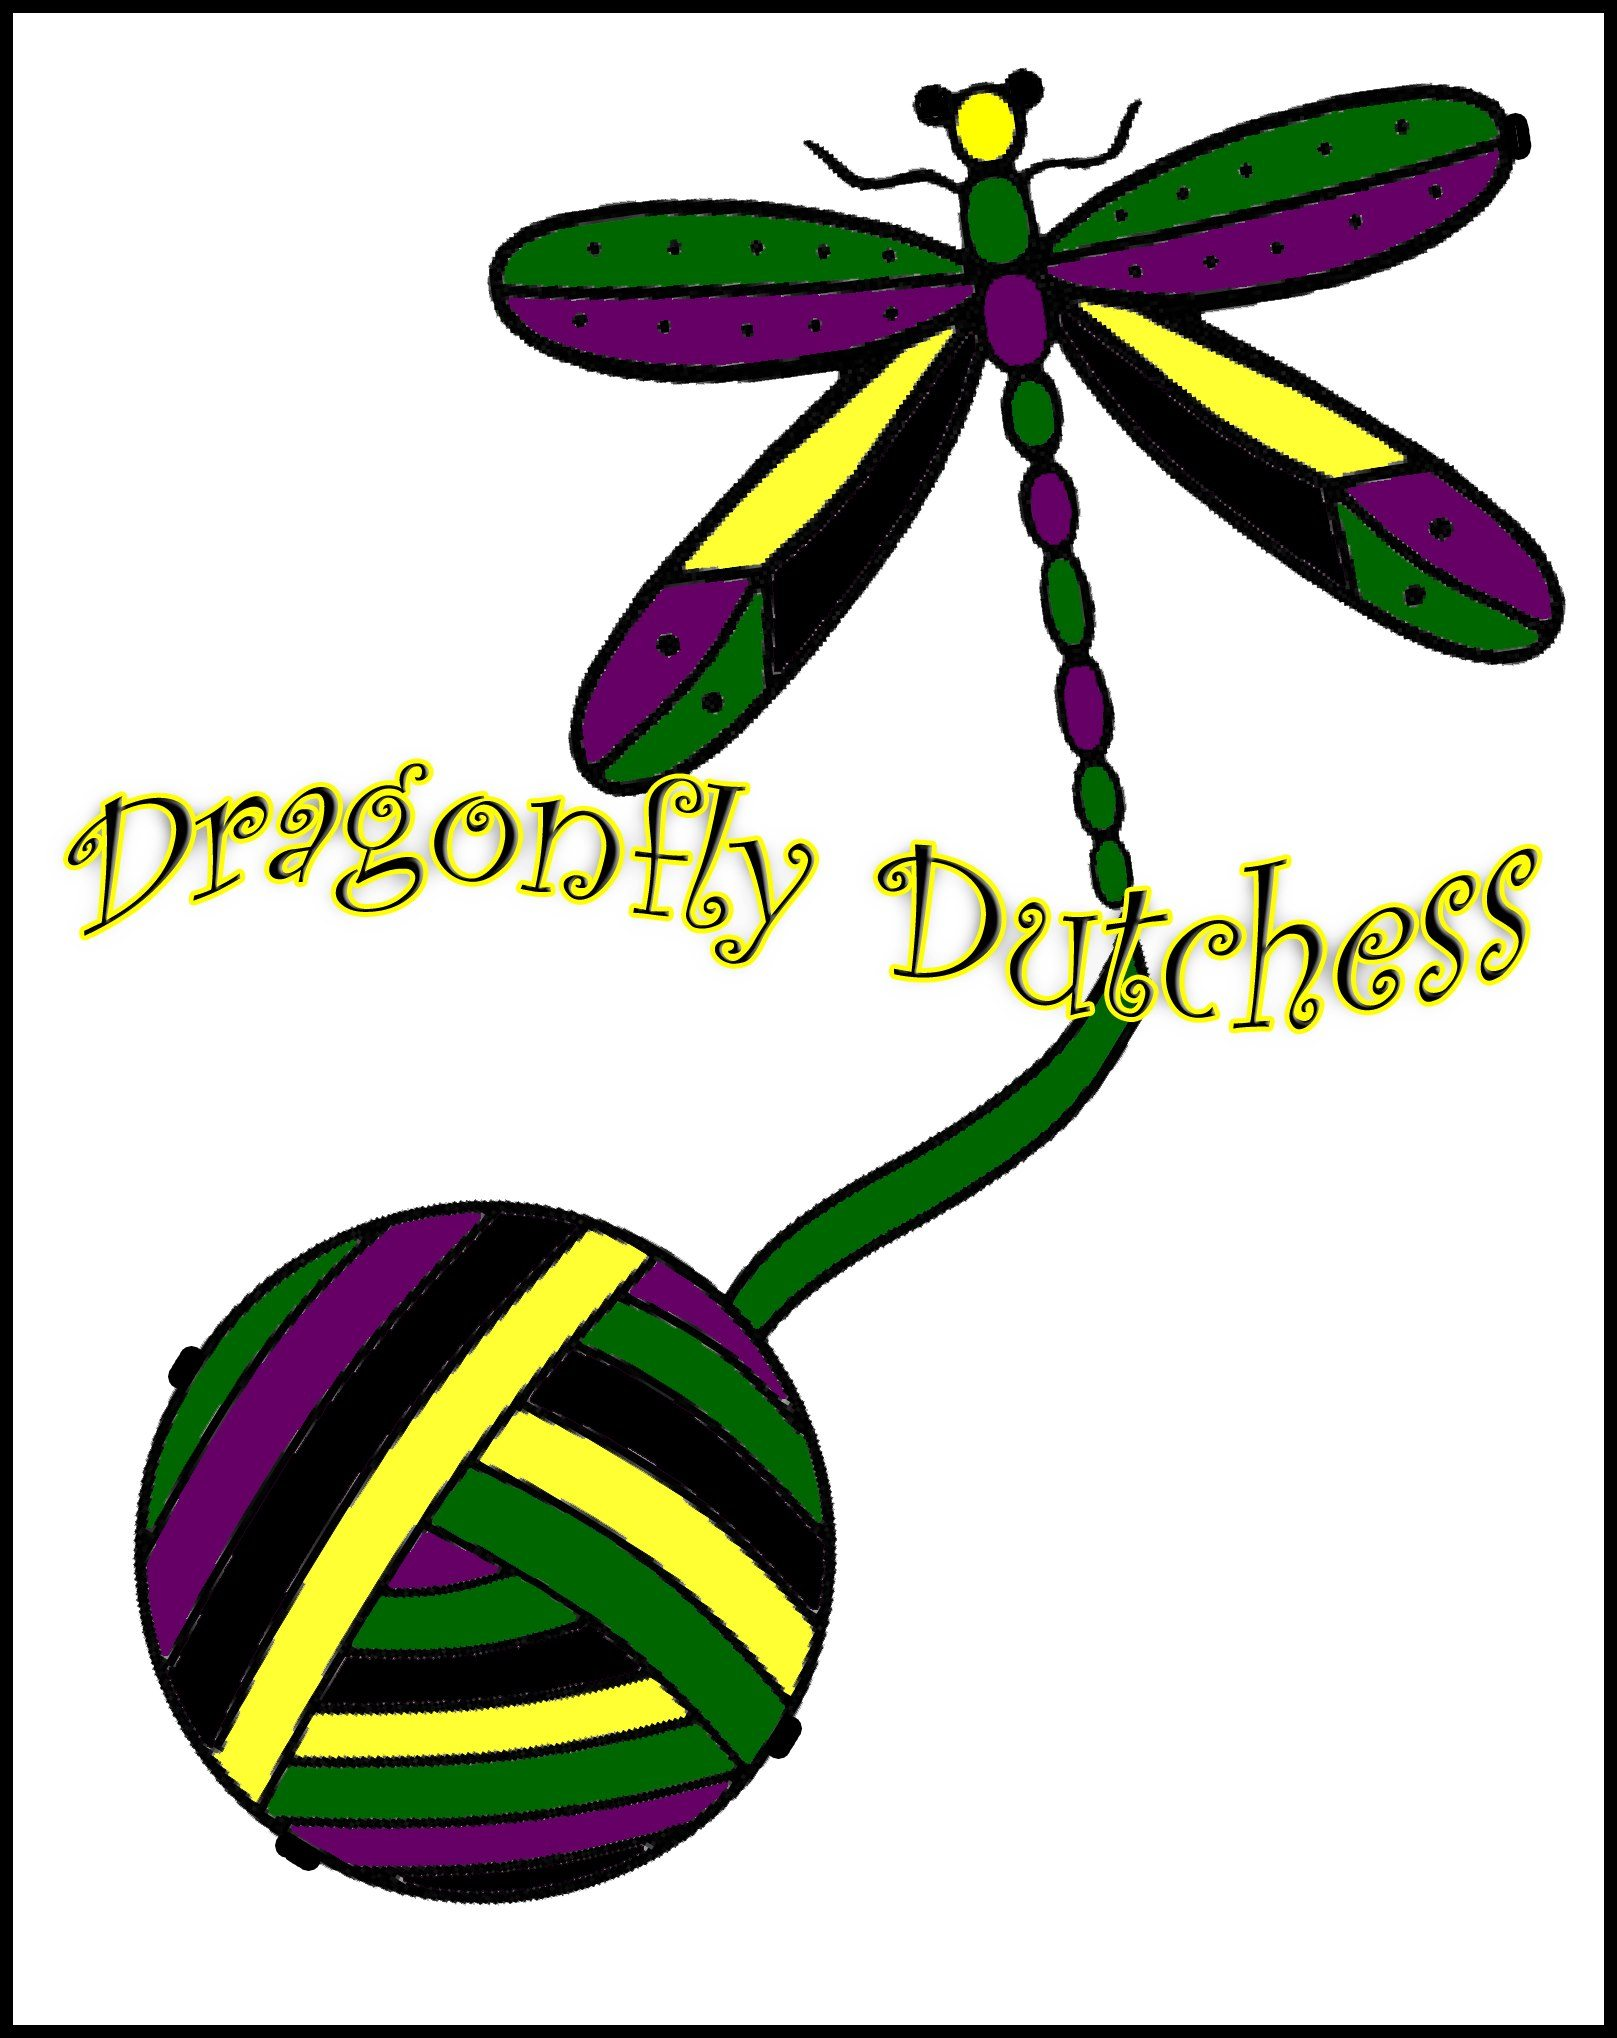 DragonflyDutchess